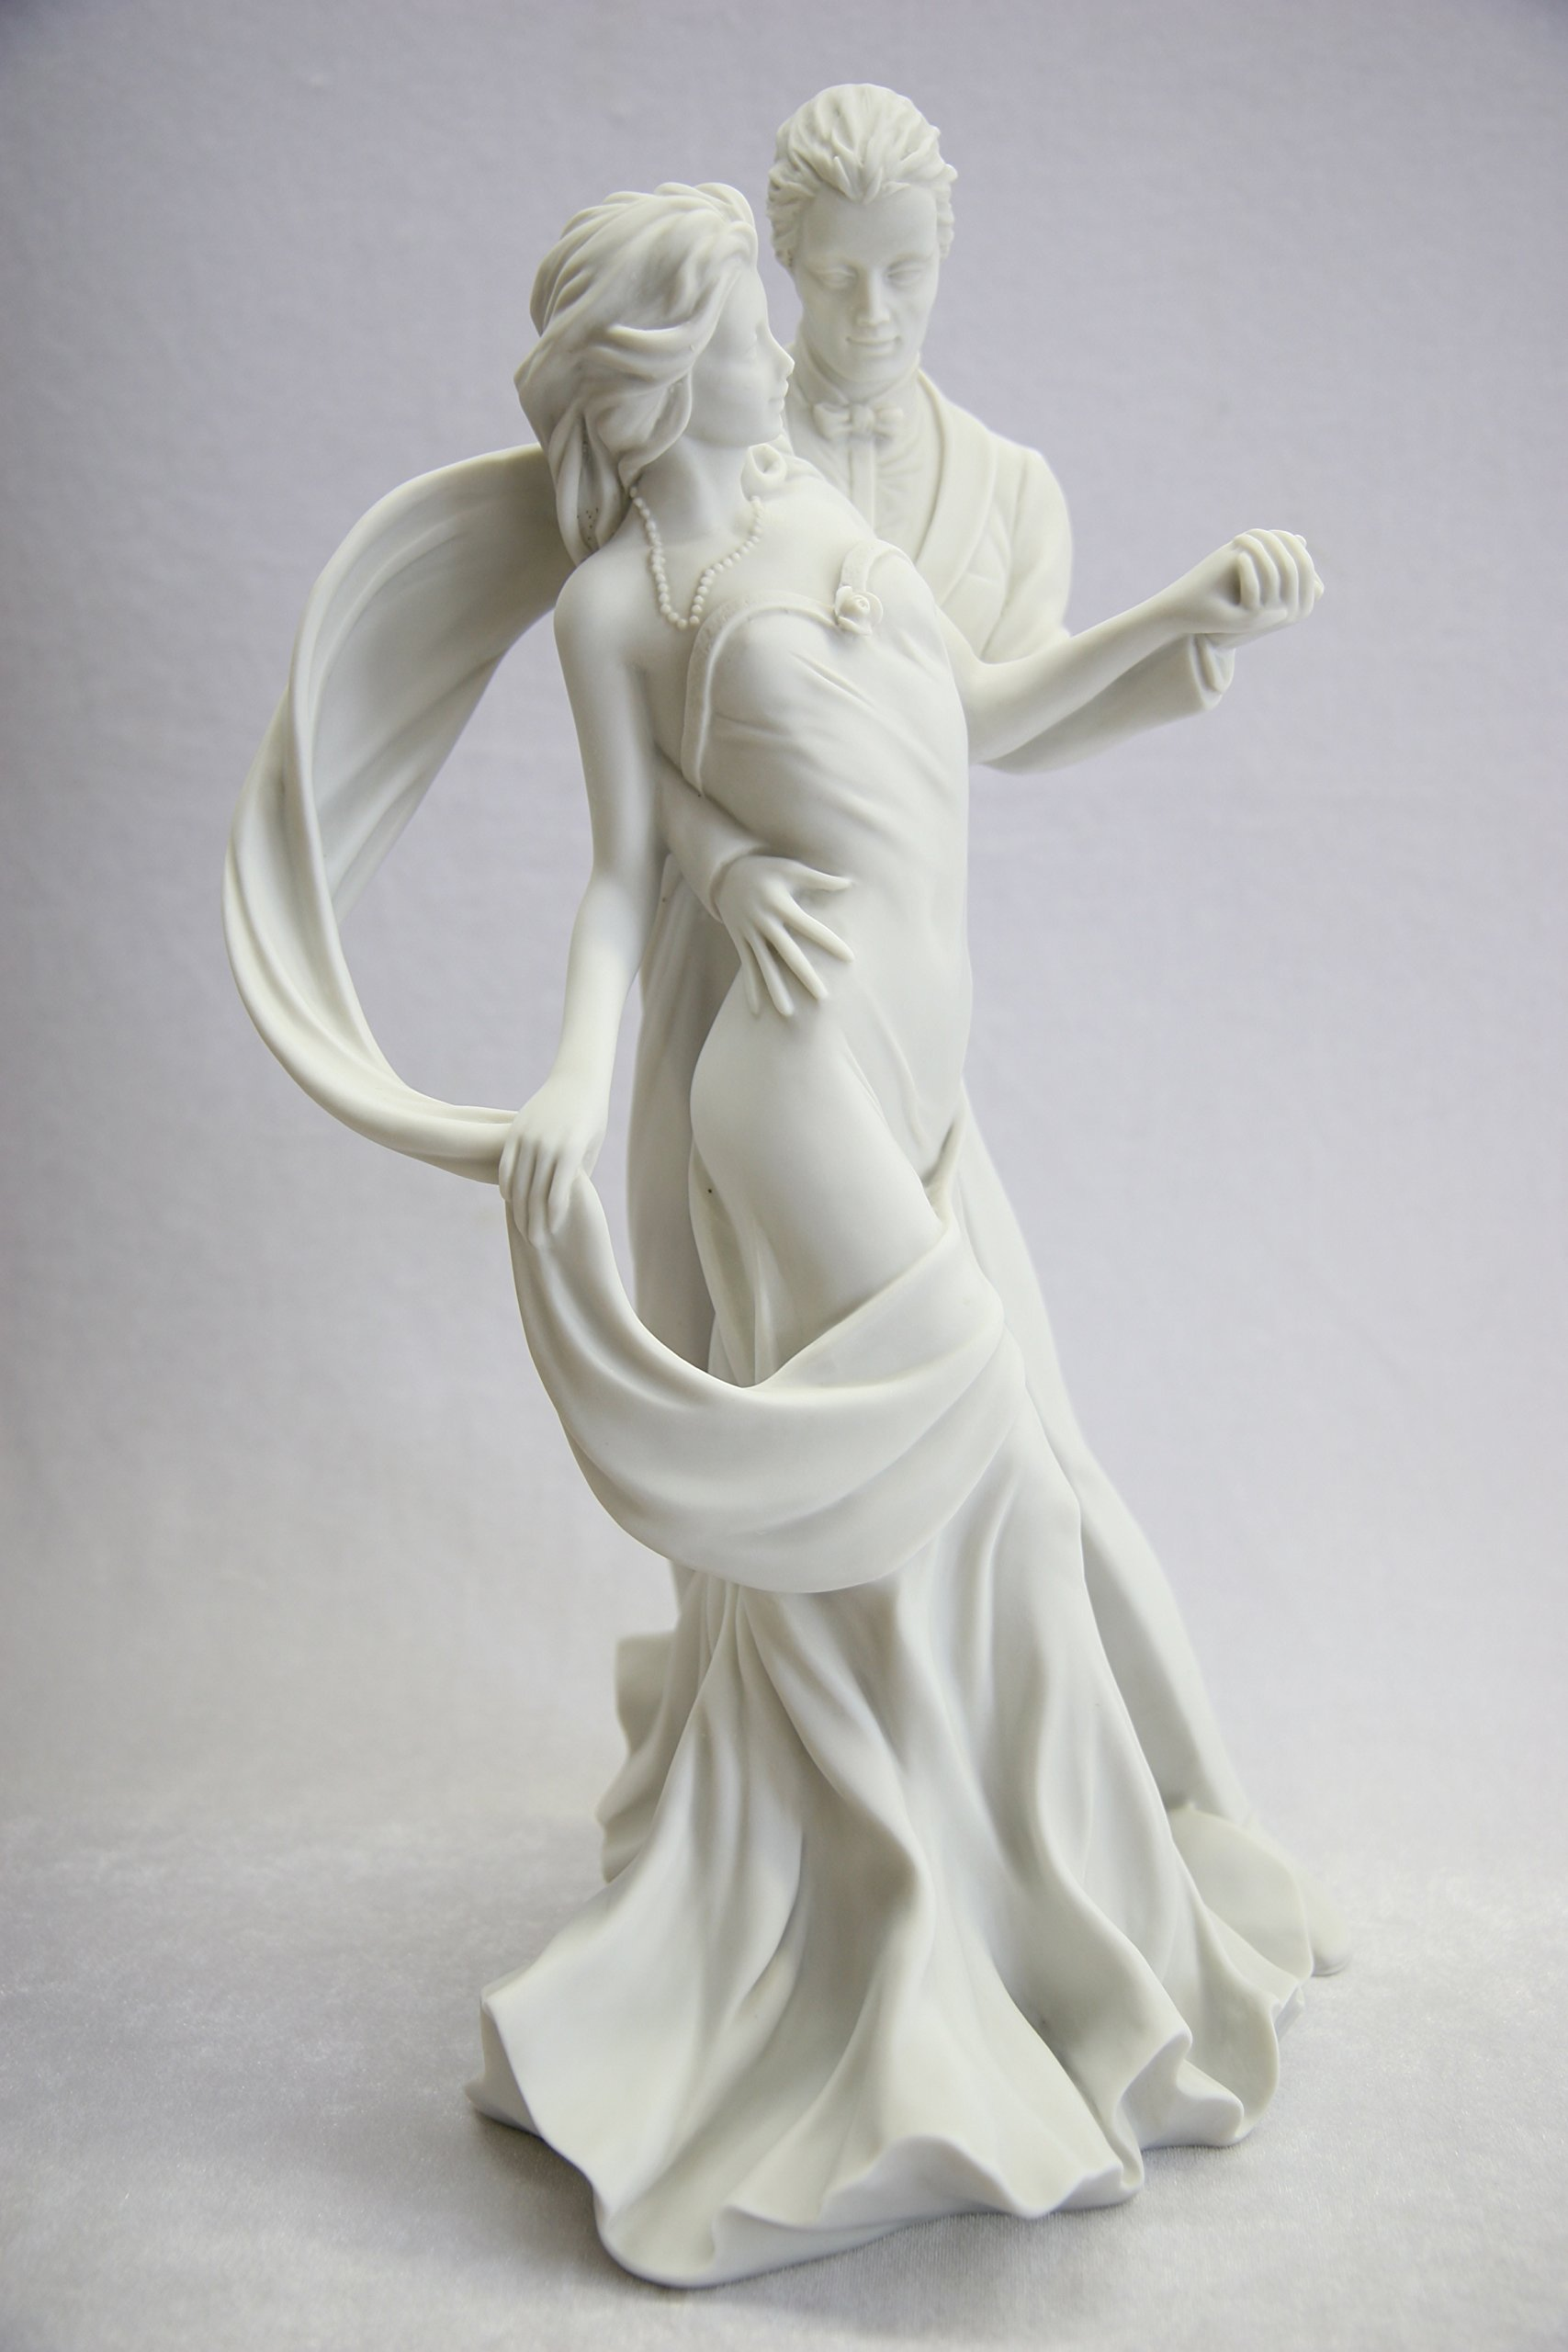 15.5'' Romantic Couple of Dancer Dance Statue Sculpture Figurine By Vittoria Collection Made in Italy by Vittoria Collection (Image #2)